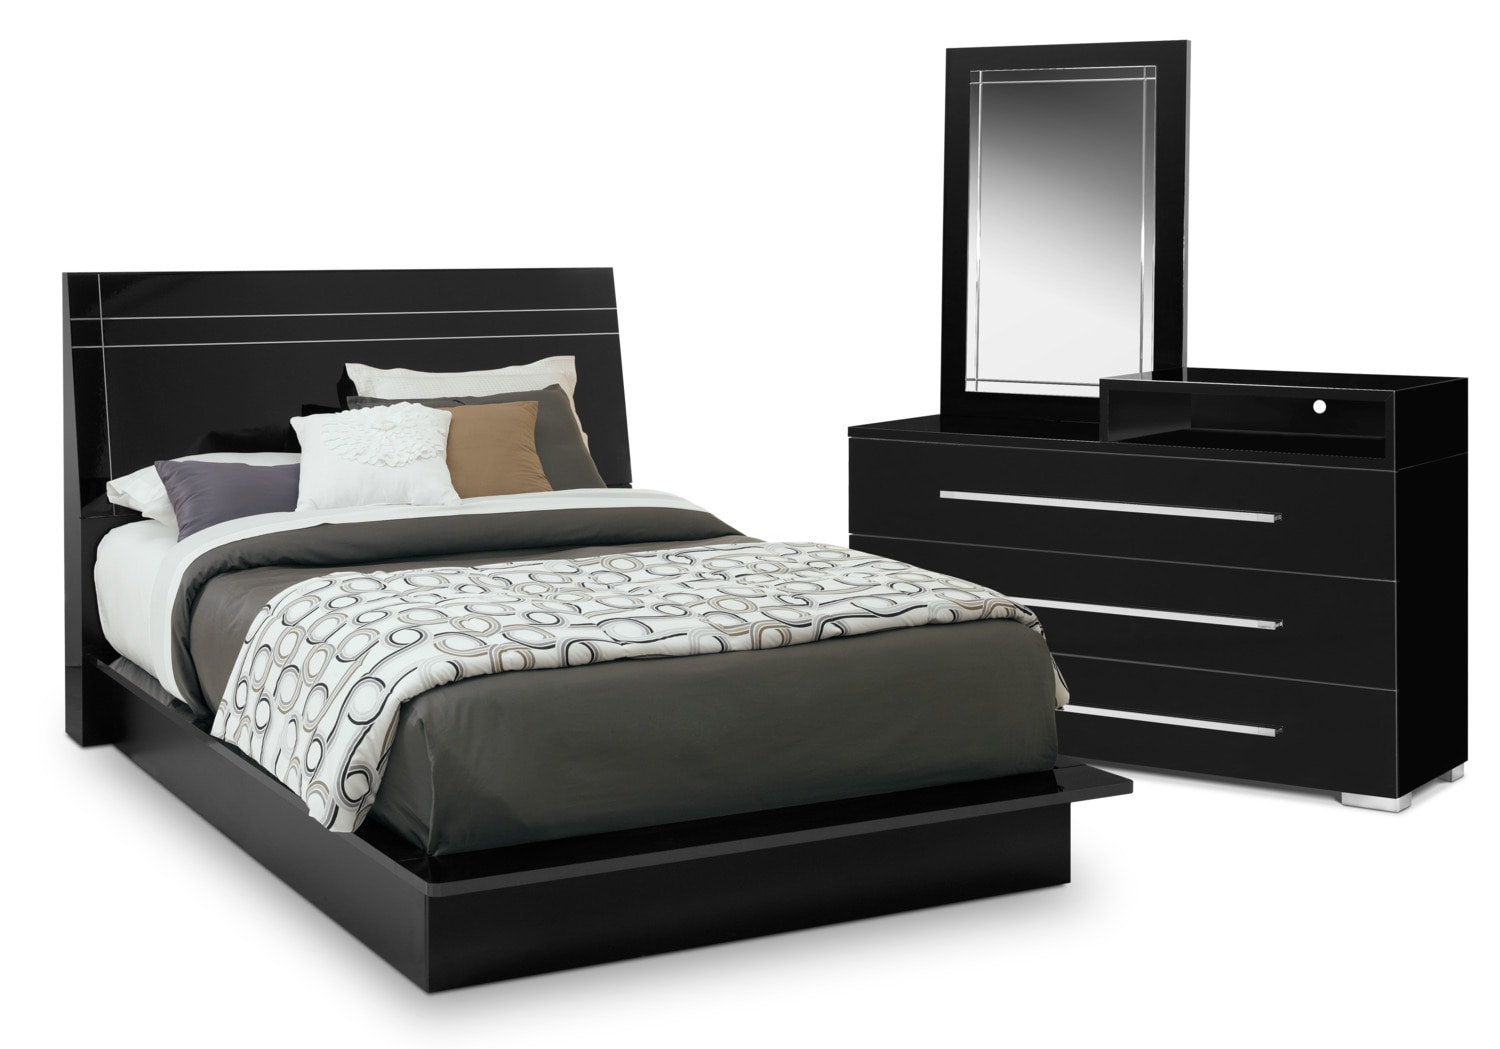 Bedroom Furniture - Dimora 5-Piece Queen Panel Bedroom Set with Media Dresser - Black